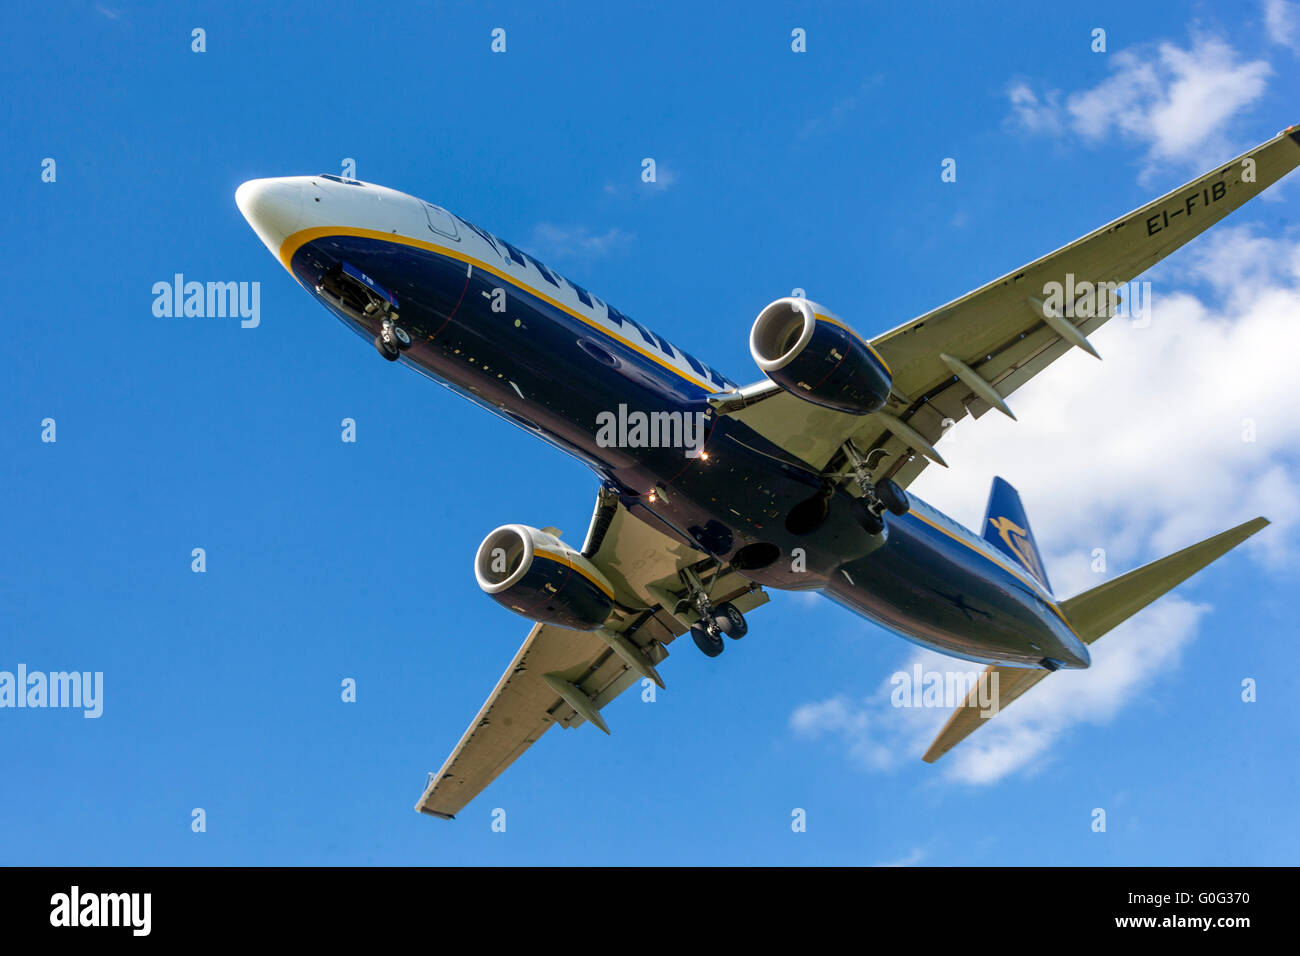 Plane Boeing 737 Ryanair approaching for a landing Prague, Czech Republic - Stock Image